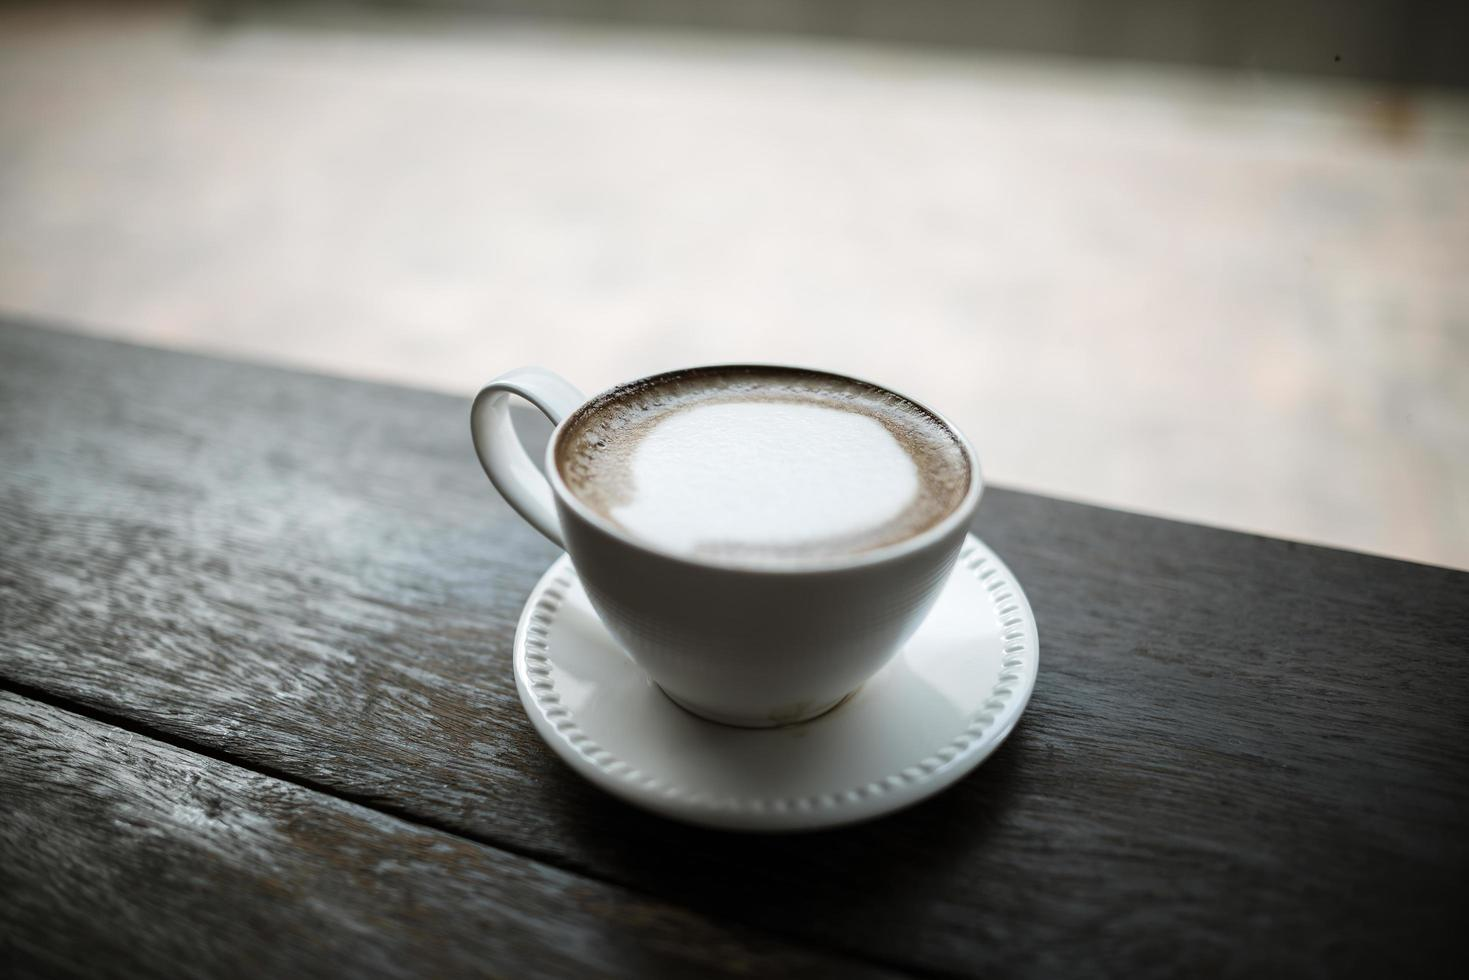 Coffee on table in a cafe photo